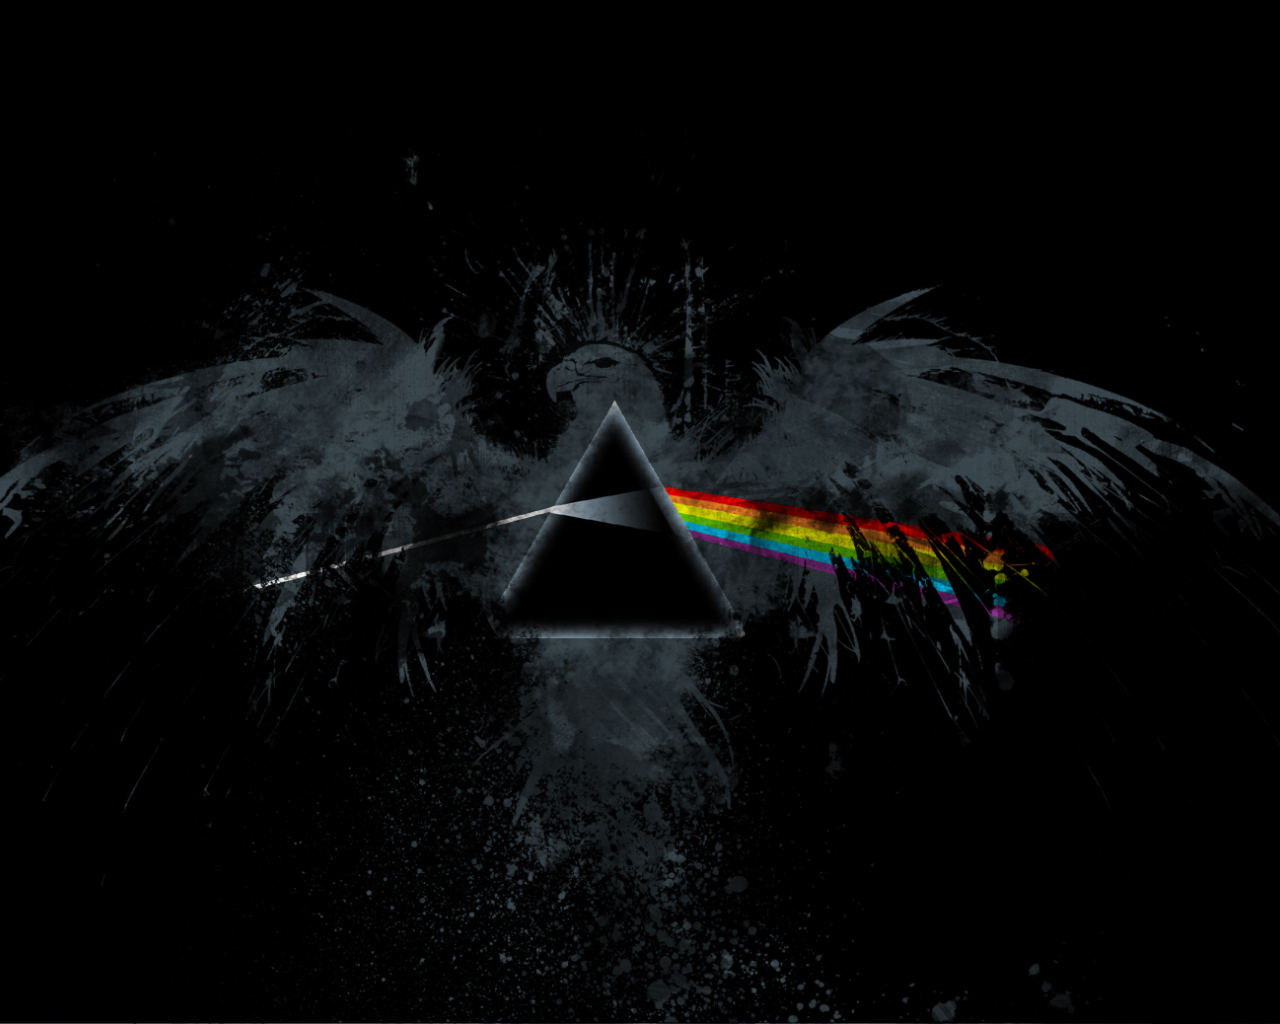 Free Download Pink Floyd Wallpaper For Iphone 2500x1038 For Your